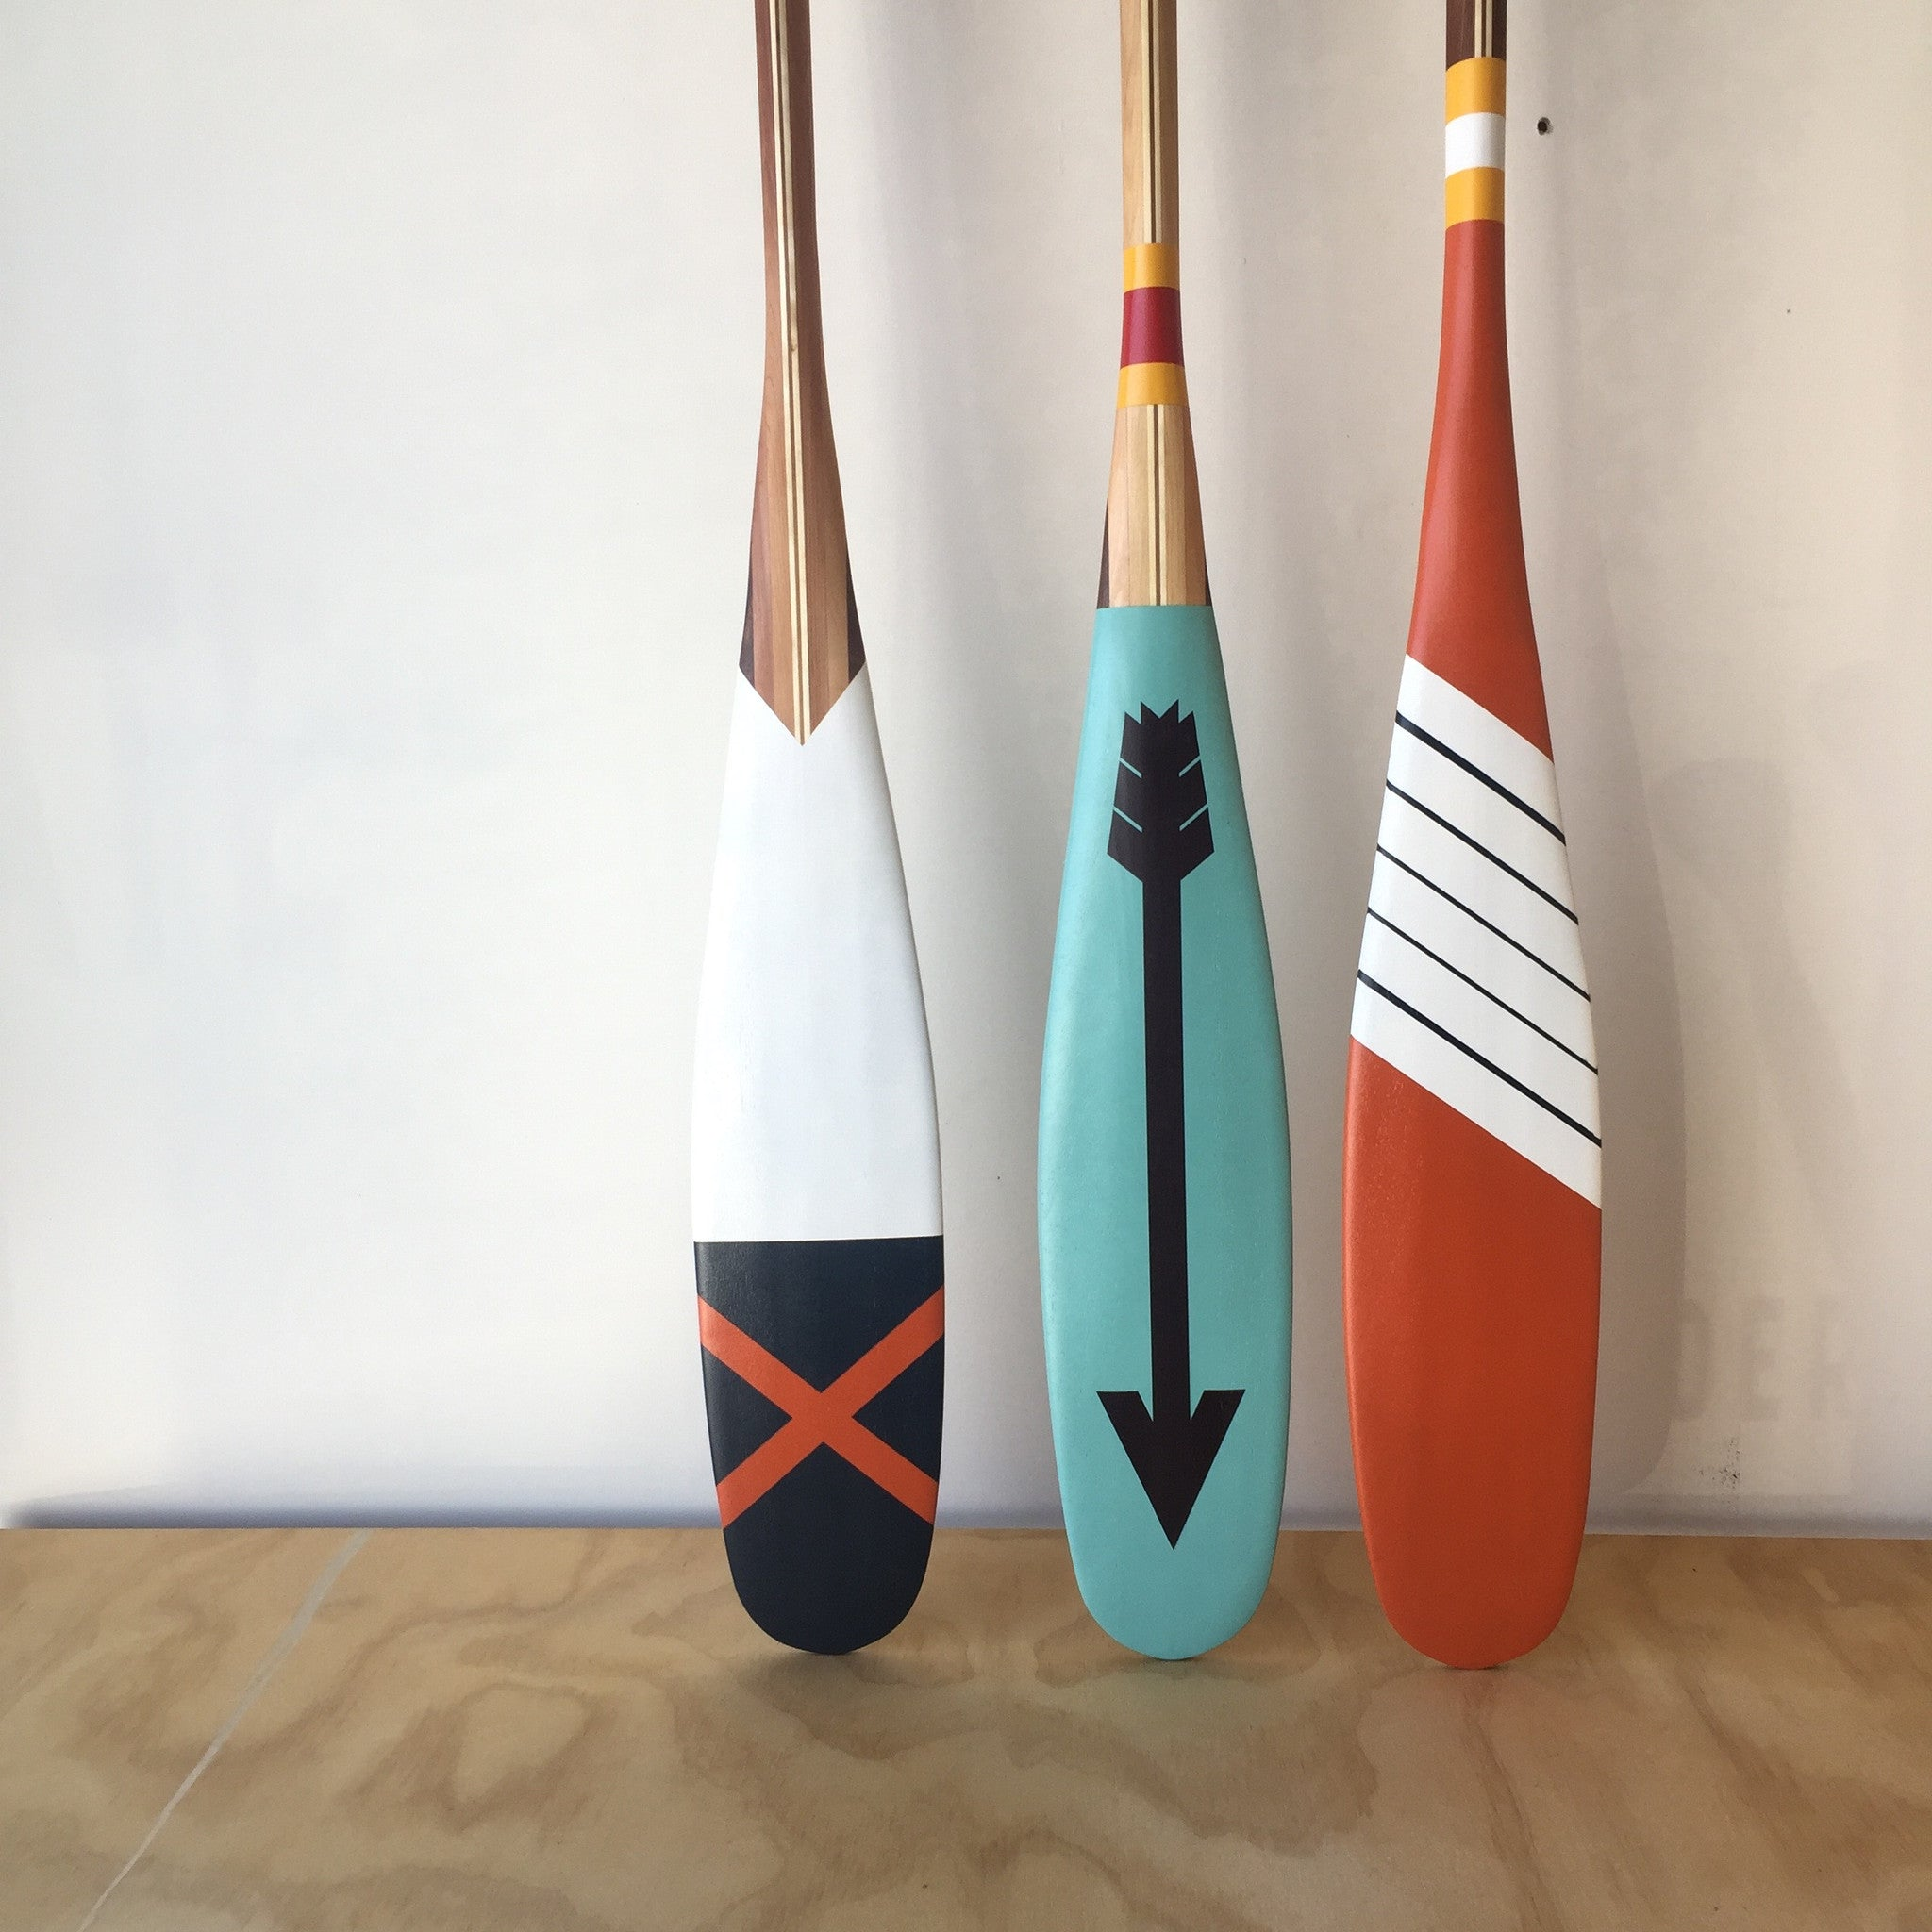 Coddington Handmade Artisan Paddle by Sanborn Canoe - Upstate MN